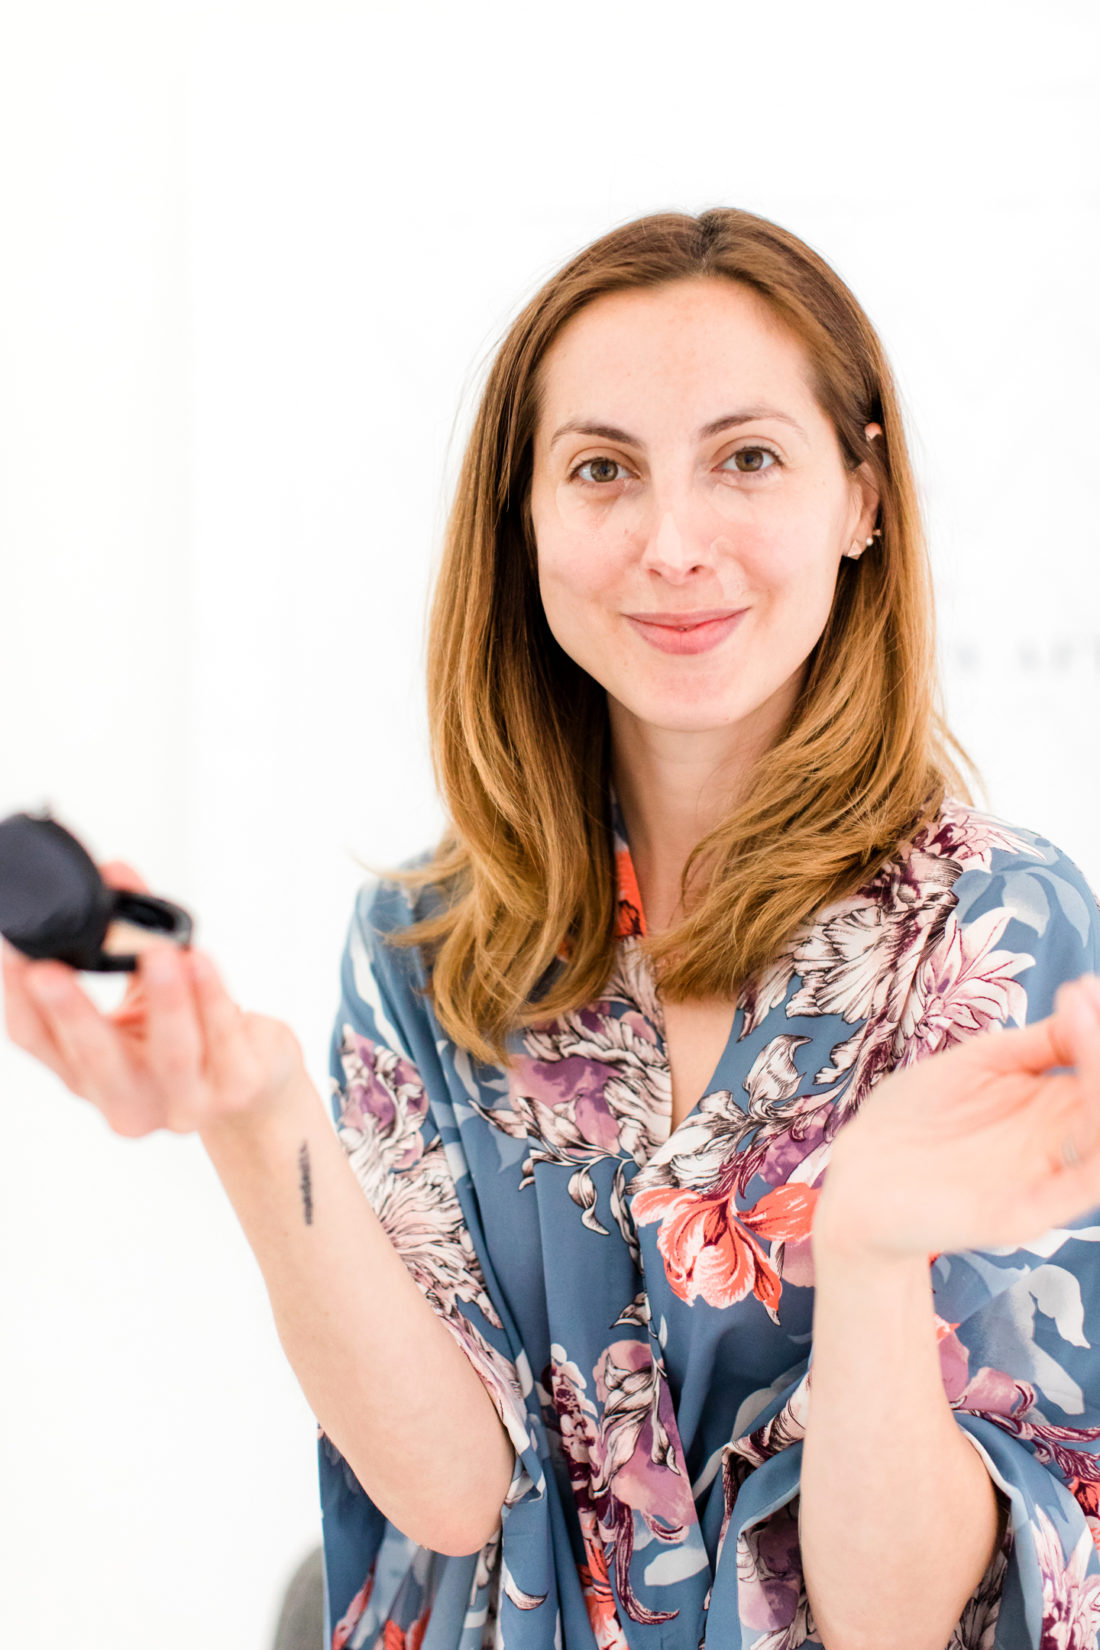 Eva Amurri Martino applies concealer as part of her photo shoot makeup tutorial